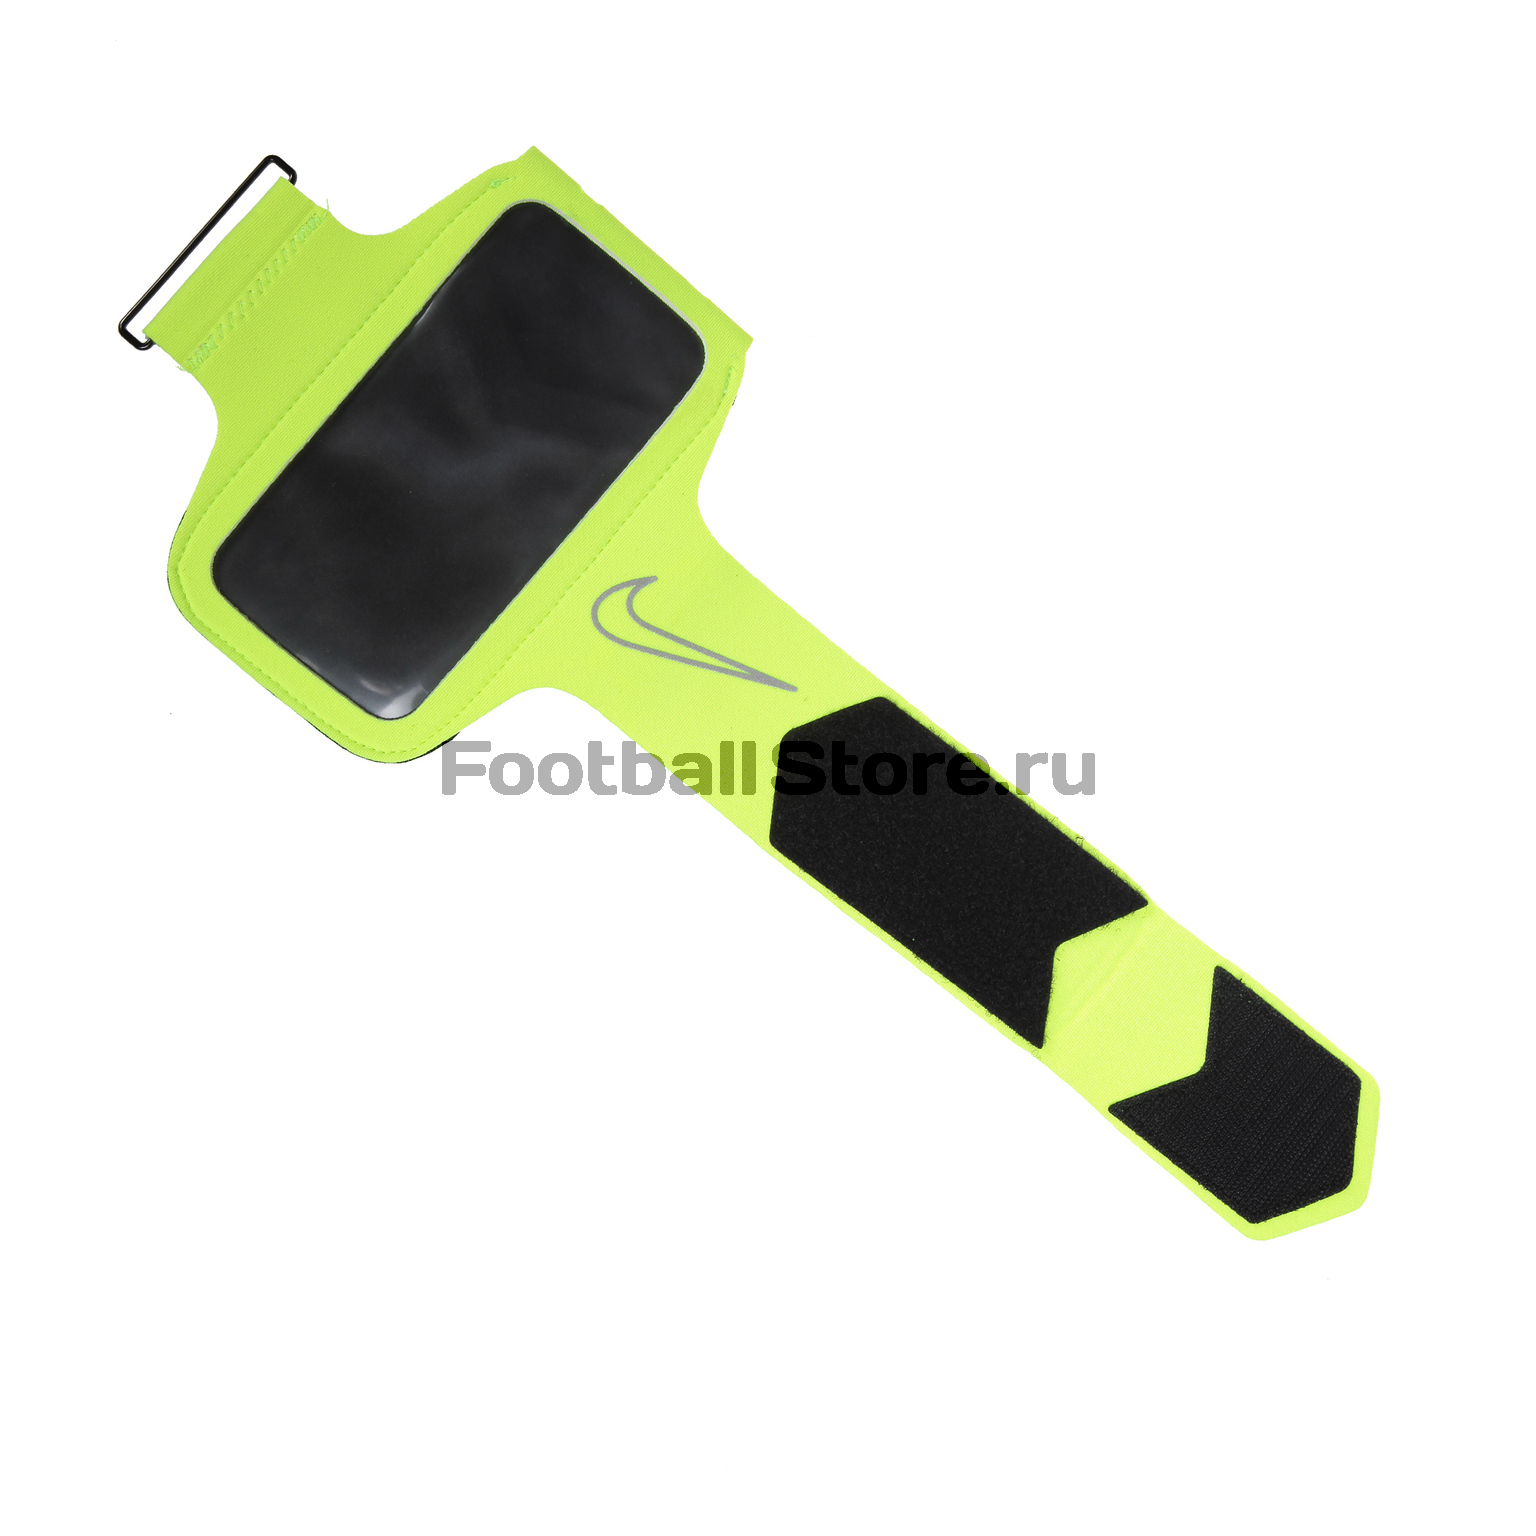 Чехол для Iphone 5/5S на руку Nike Lightweight Arm Band 2.0 N.RN.43.715.OS спортинвентарь nike чехол для смартфона на руку nike printed lean arm band n rn 68 439 os